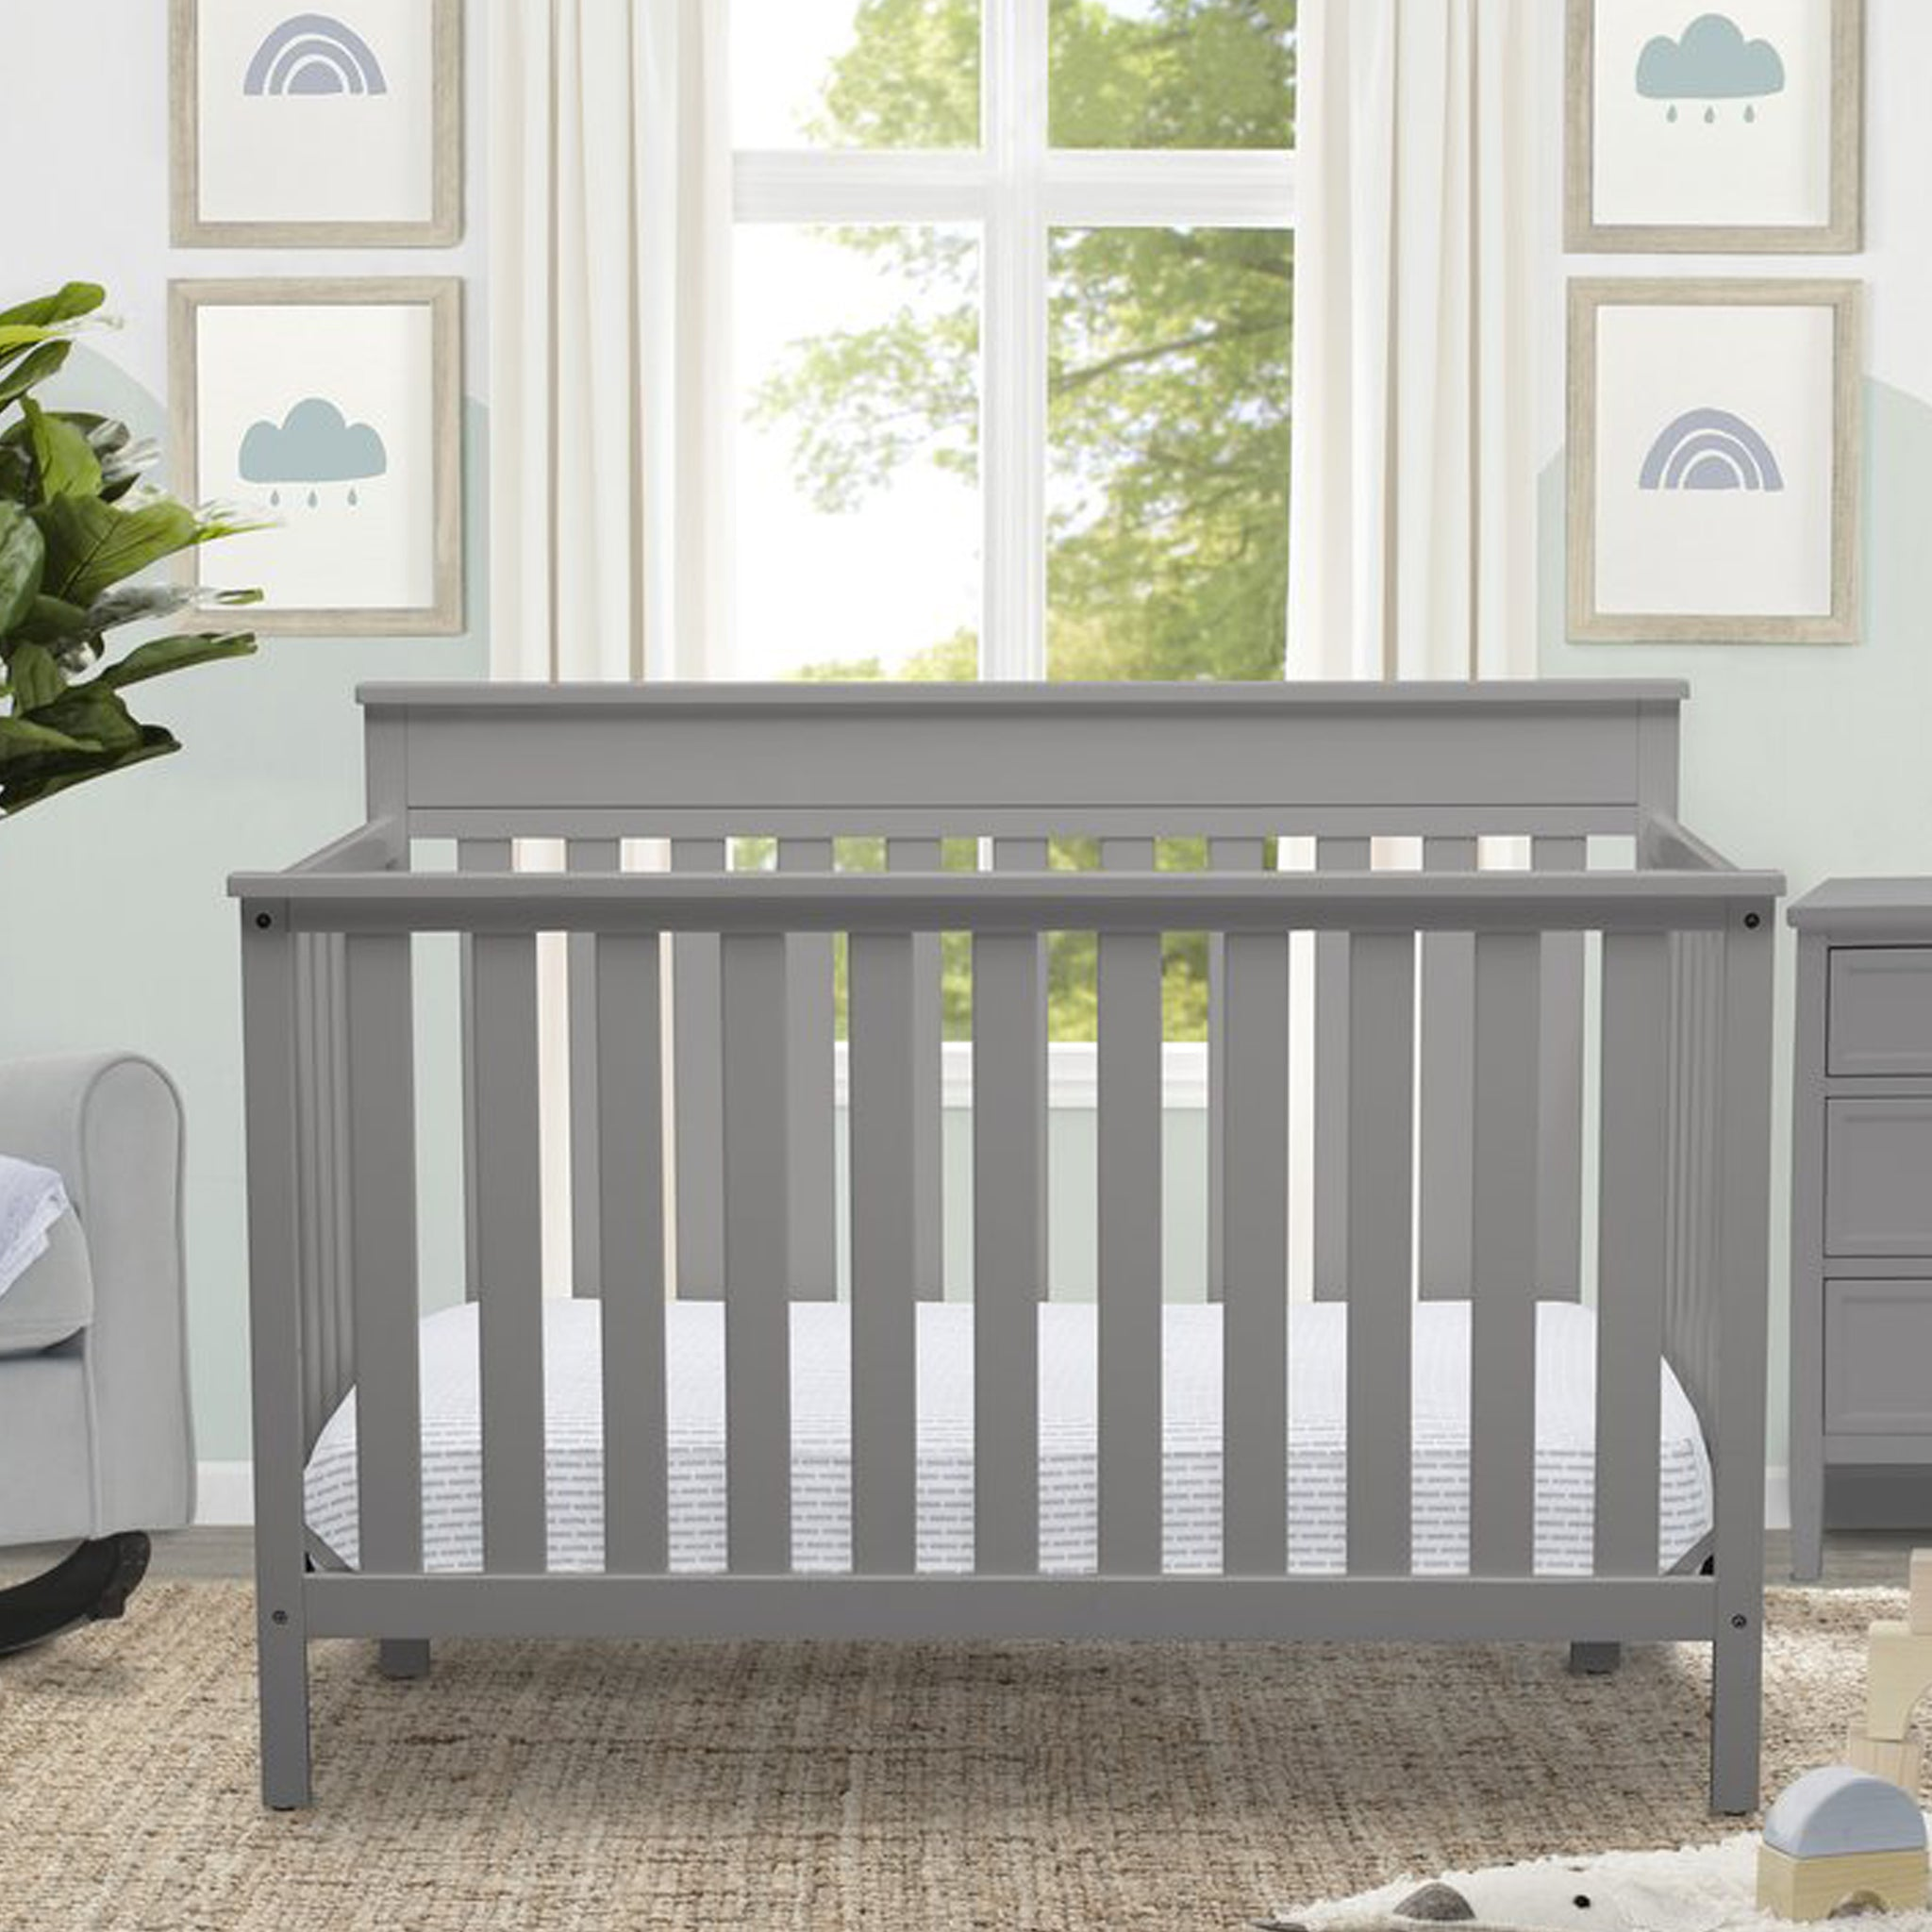 Kingswood 4-in-1 Convertible Baby Crib